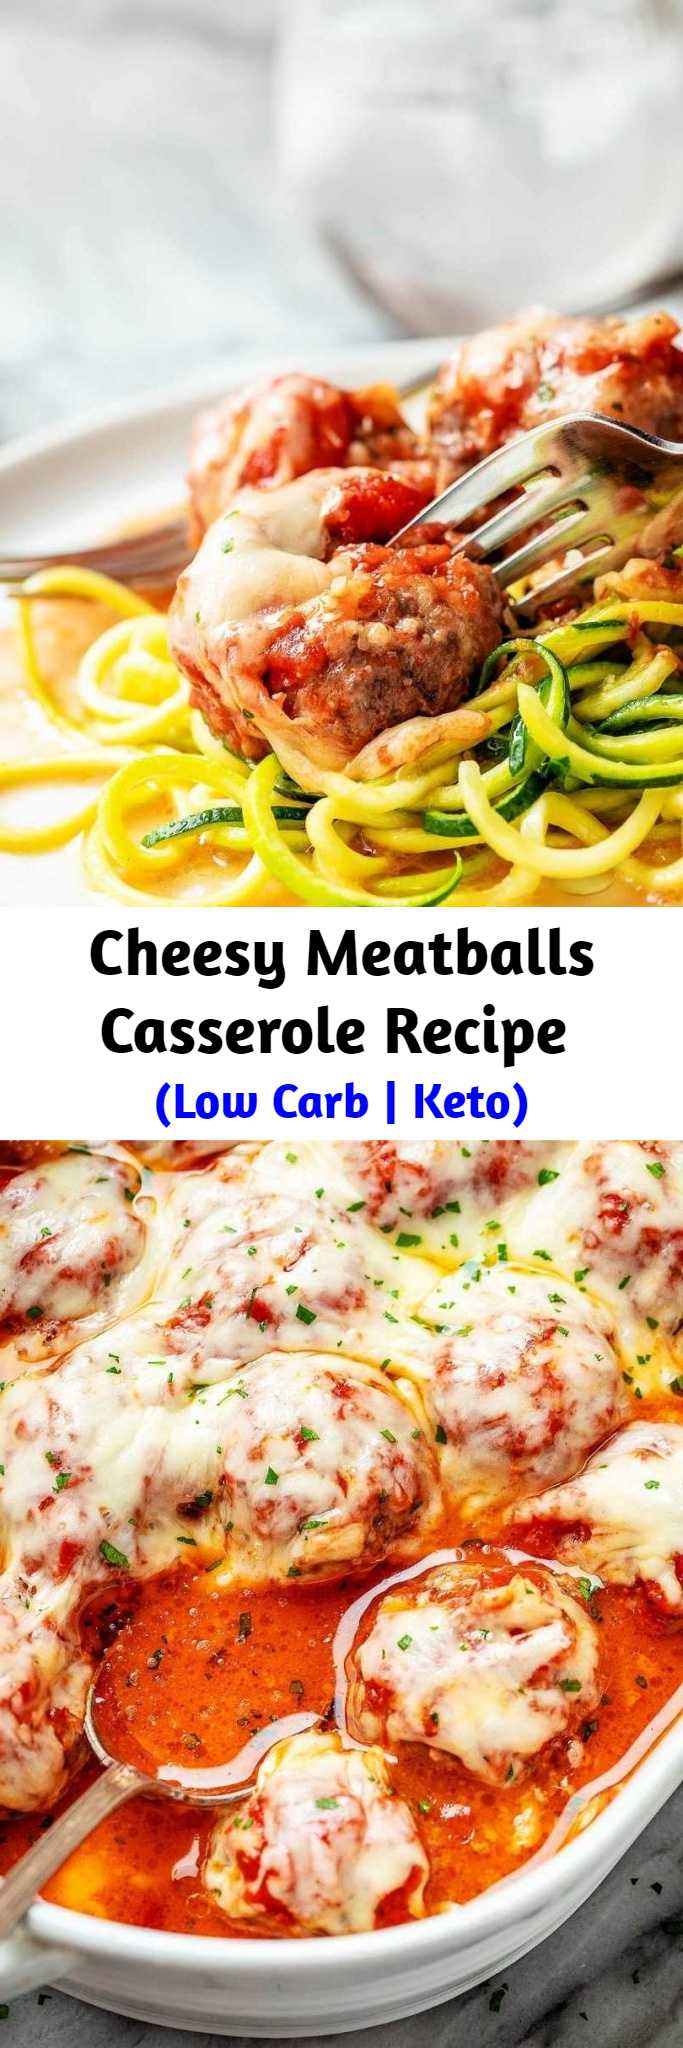 Cheesy Meatballs Casserole Recipe (Low Carb | Keto) - Looking for a great low carb dinner option? This low carb turkey meatball casserole recipe is absolutely fabulous. #lowcarb #meatballs #recipe